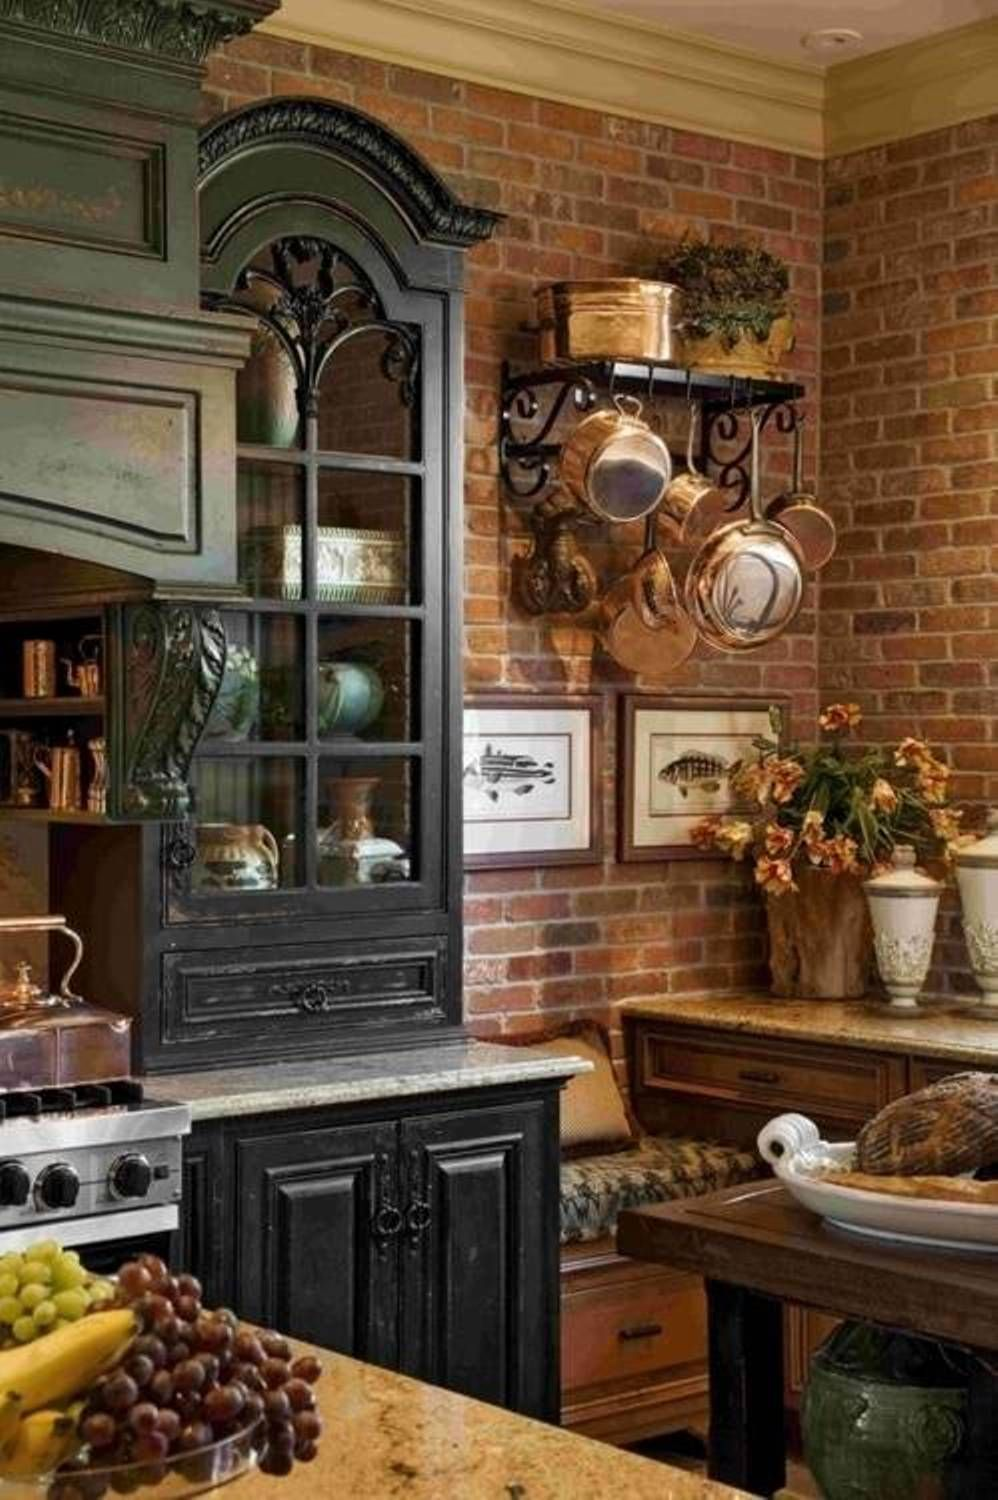 kitchen counter decor pix  Kitchen Counter Stools With Backs Decorating Ideas Images In Kitchen